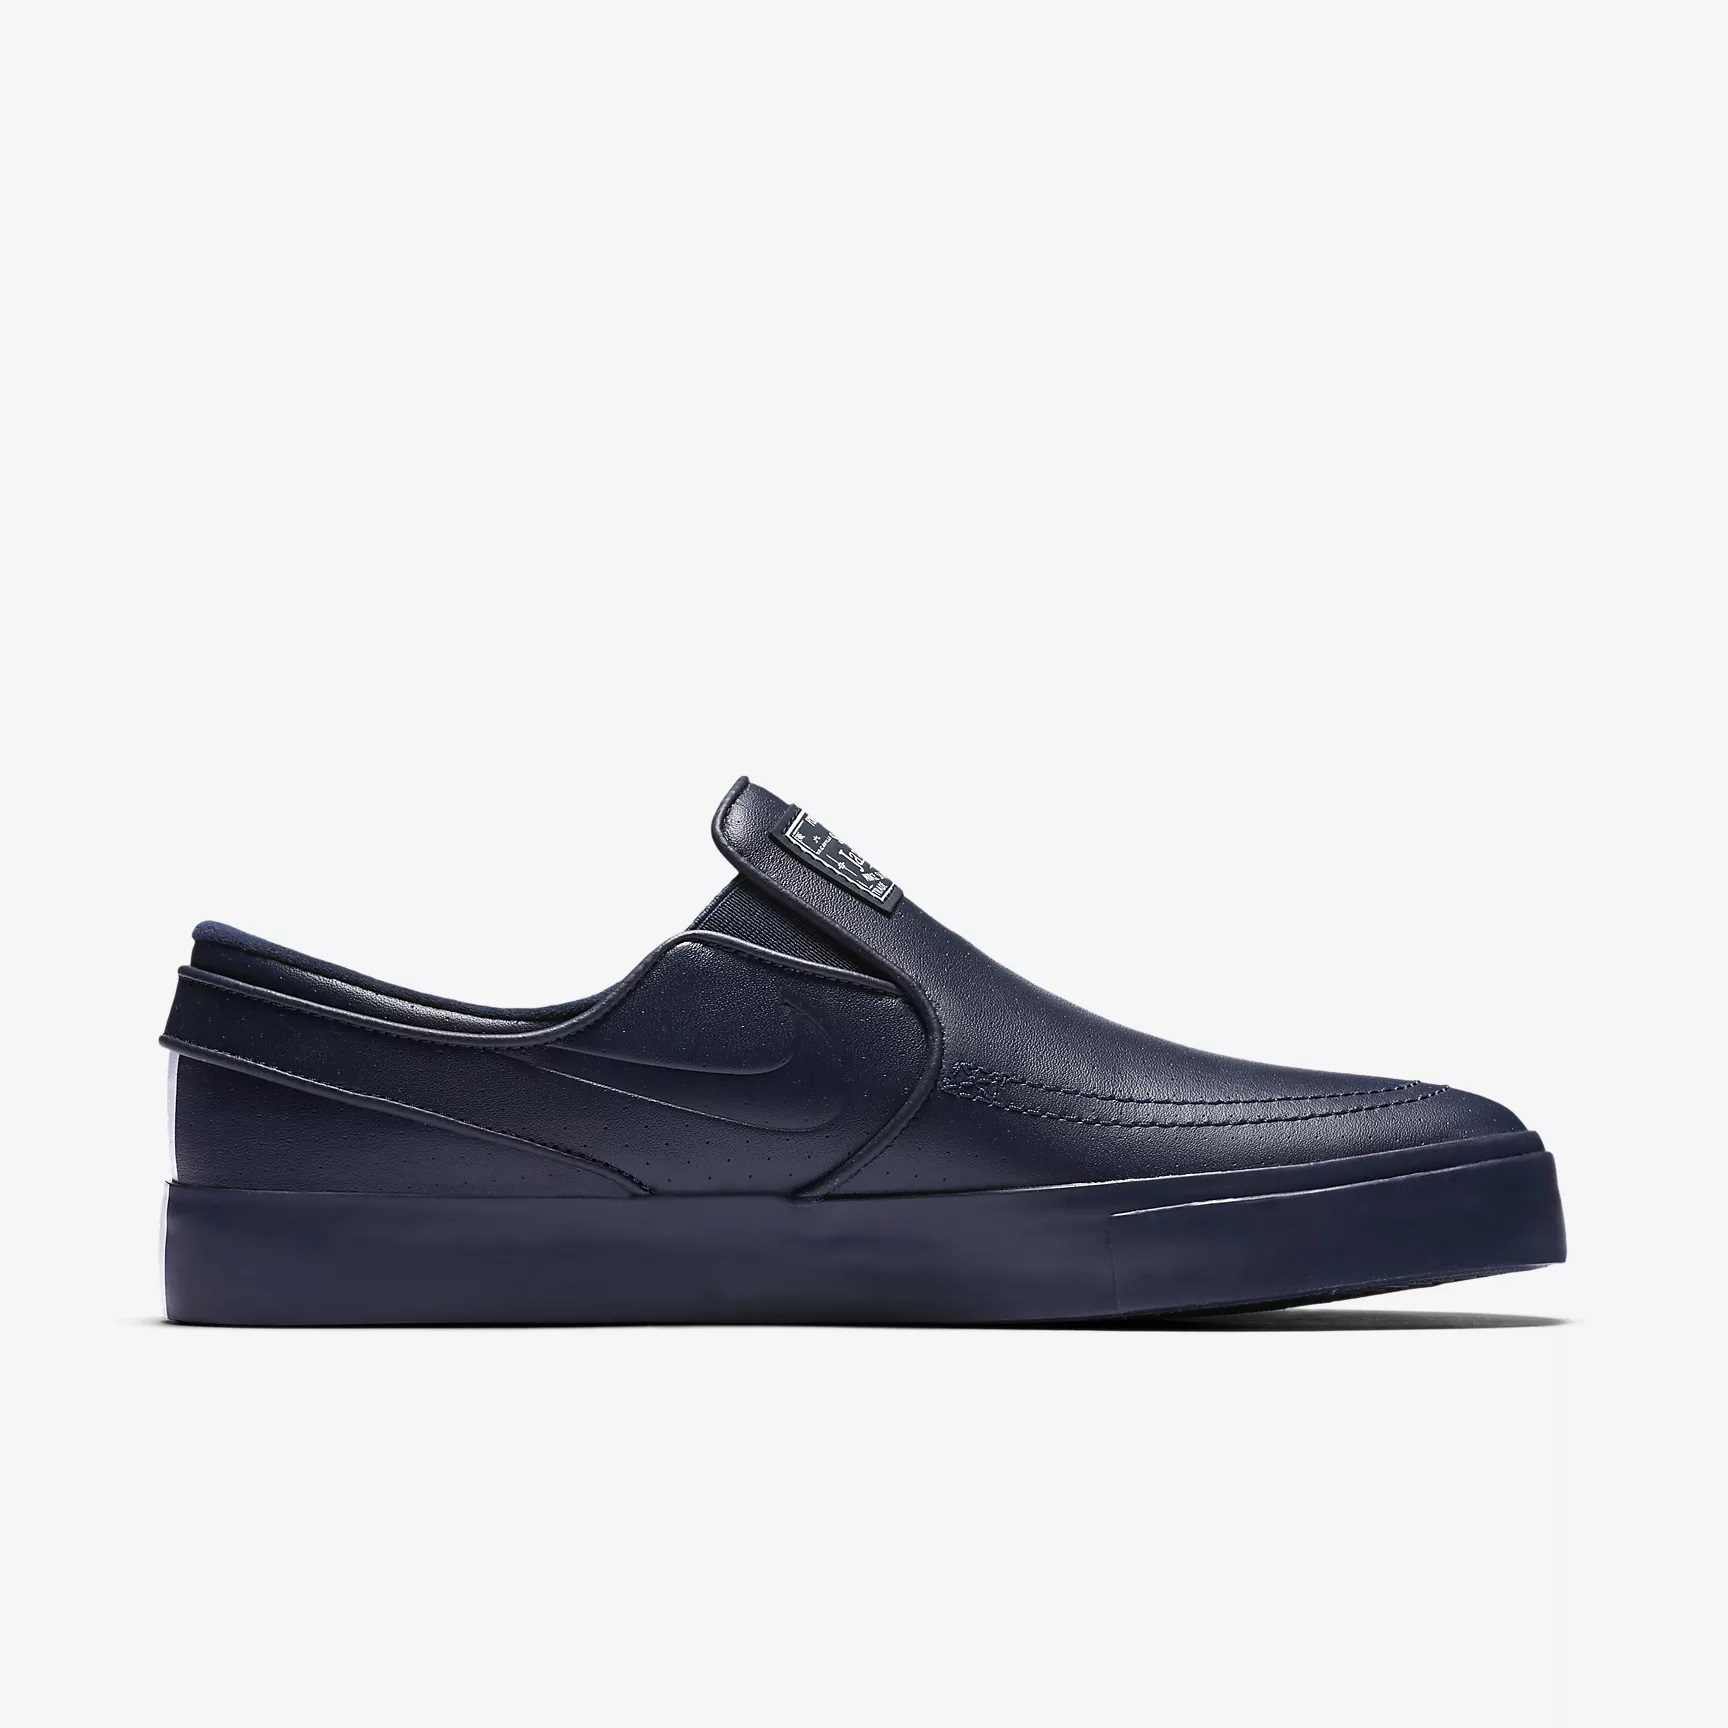 【送料込み】 メンズ NIKE SB ZOOM STEFAN JANOSKI SLIP-ON